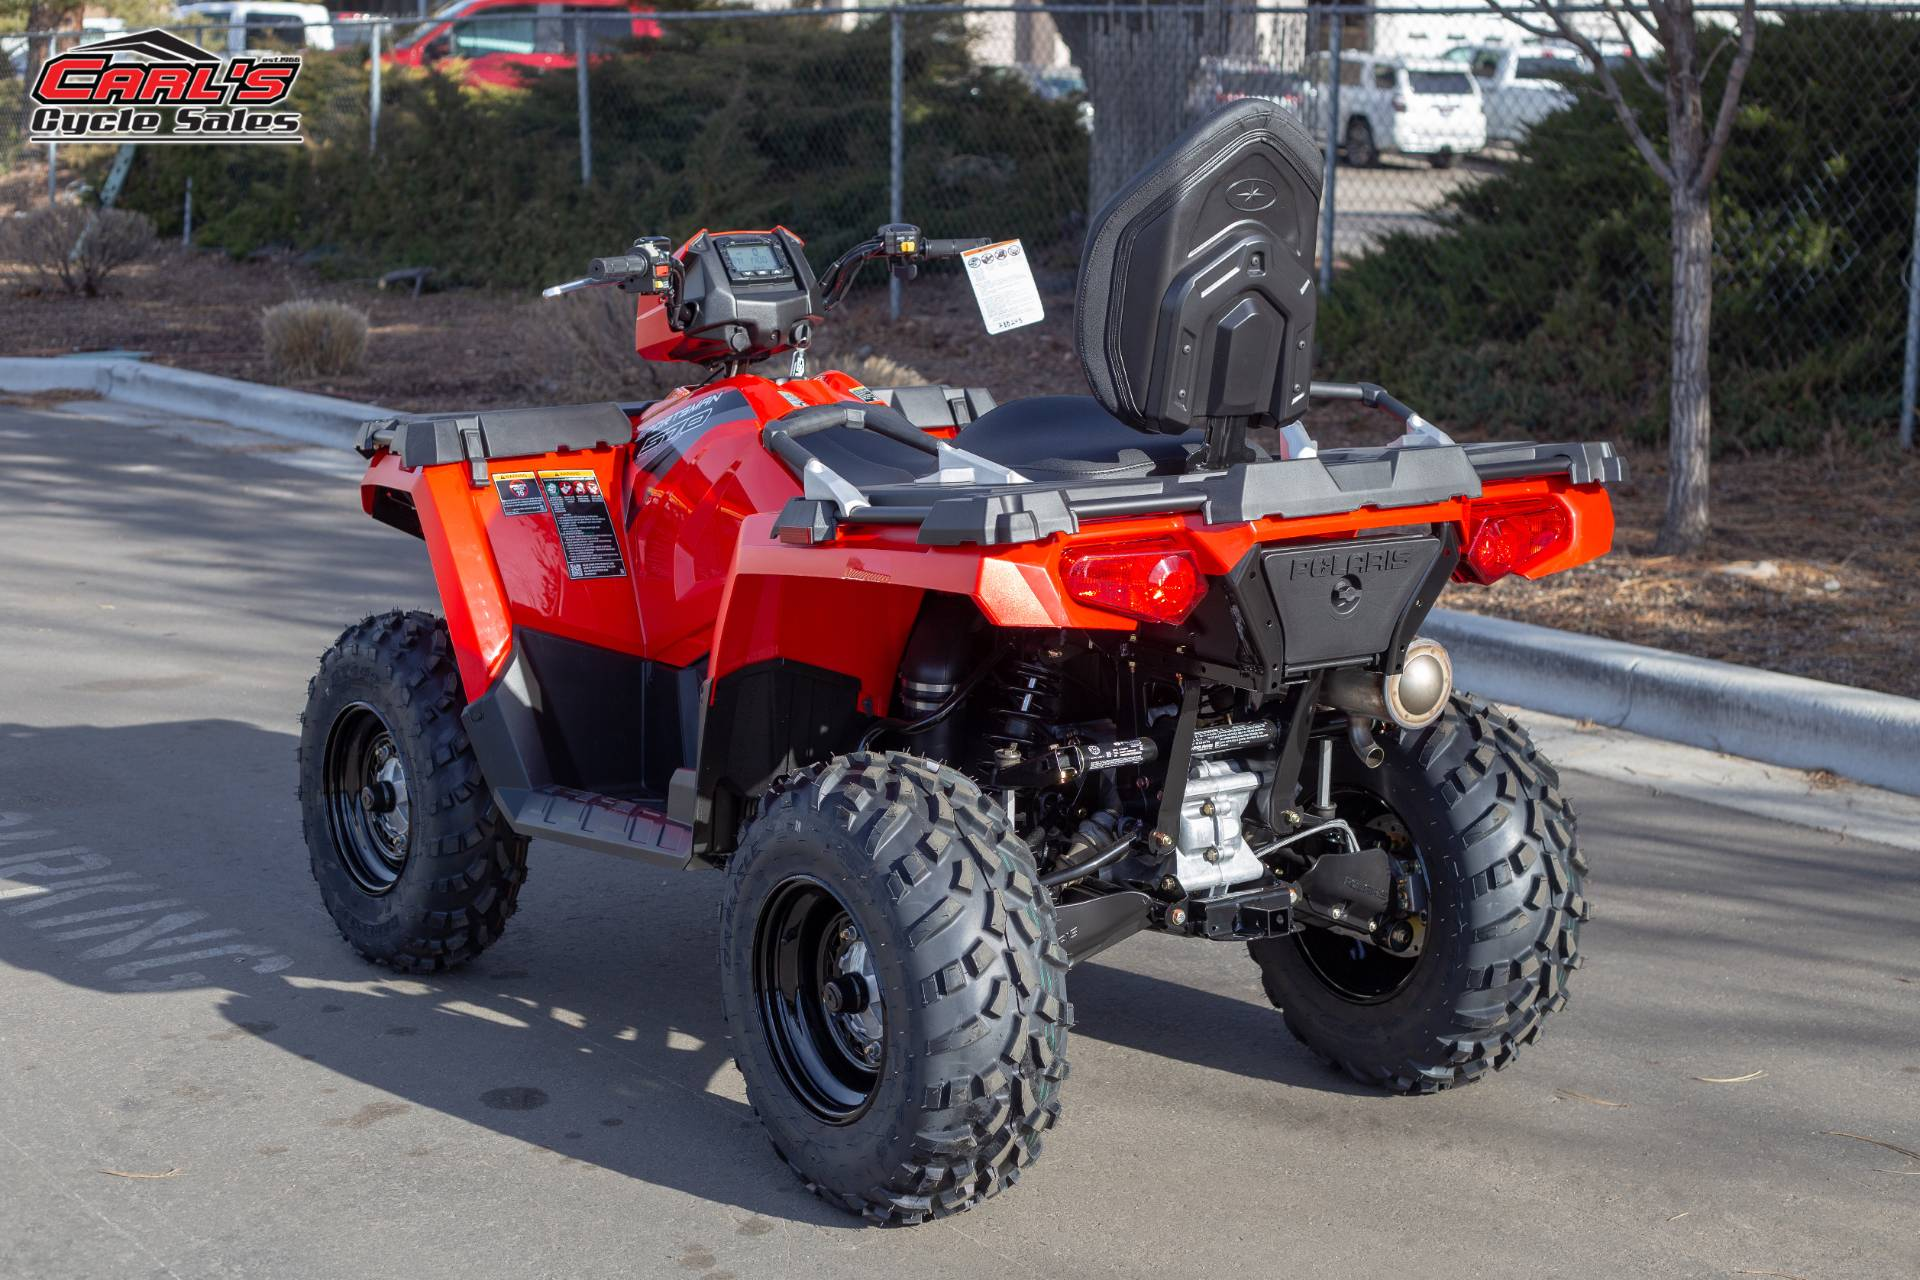 2019 Polaris Sportsman Touring 570 in Boise, Idaho - Photo 3